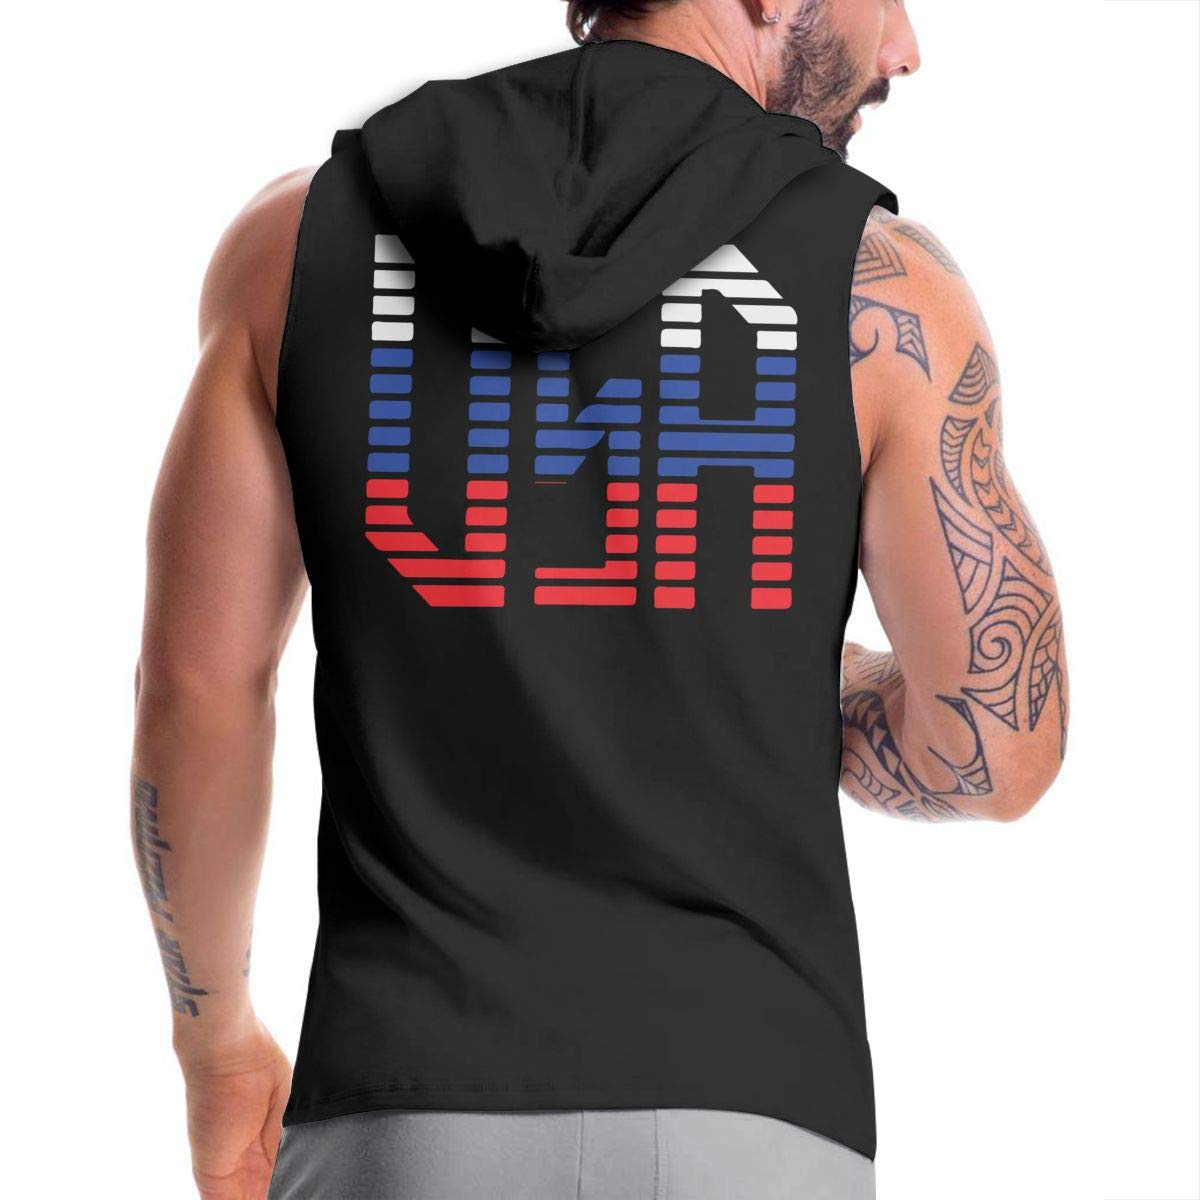 BMWEITIHBQ Mens Sleeveless Sweatshirt USA 4 Zipper Vest